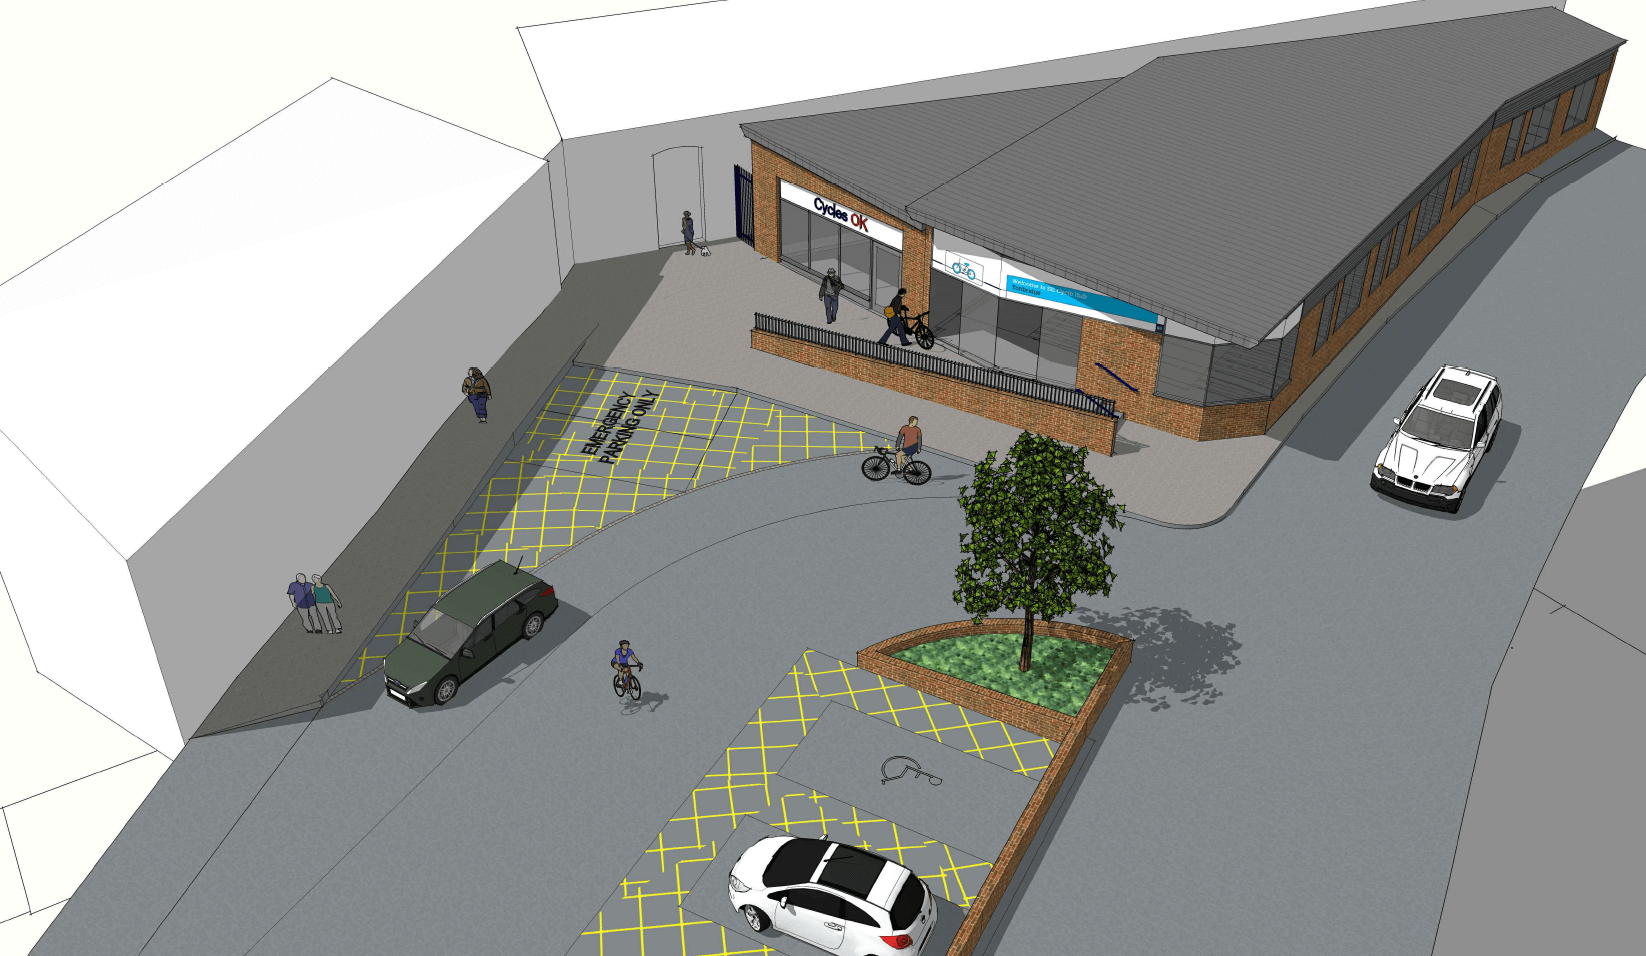 Southeastern Cycle Hubs Secured image